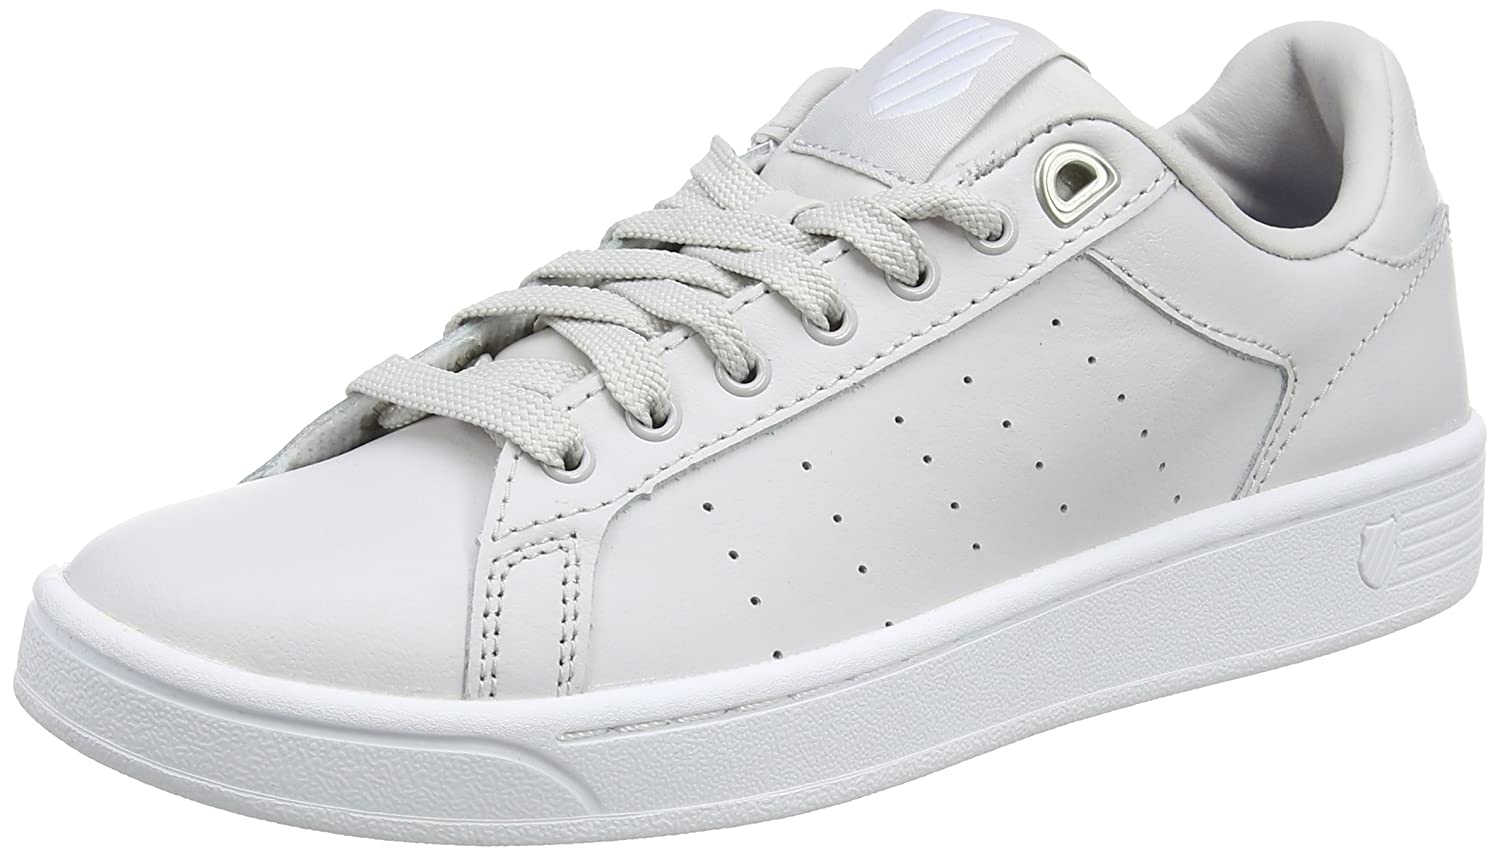 K-Swiss Women's Clean Court CMF Fashion Sneaker B01LYBDJ78 10 B(M) US|Wind Chime/White